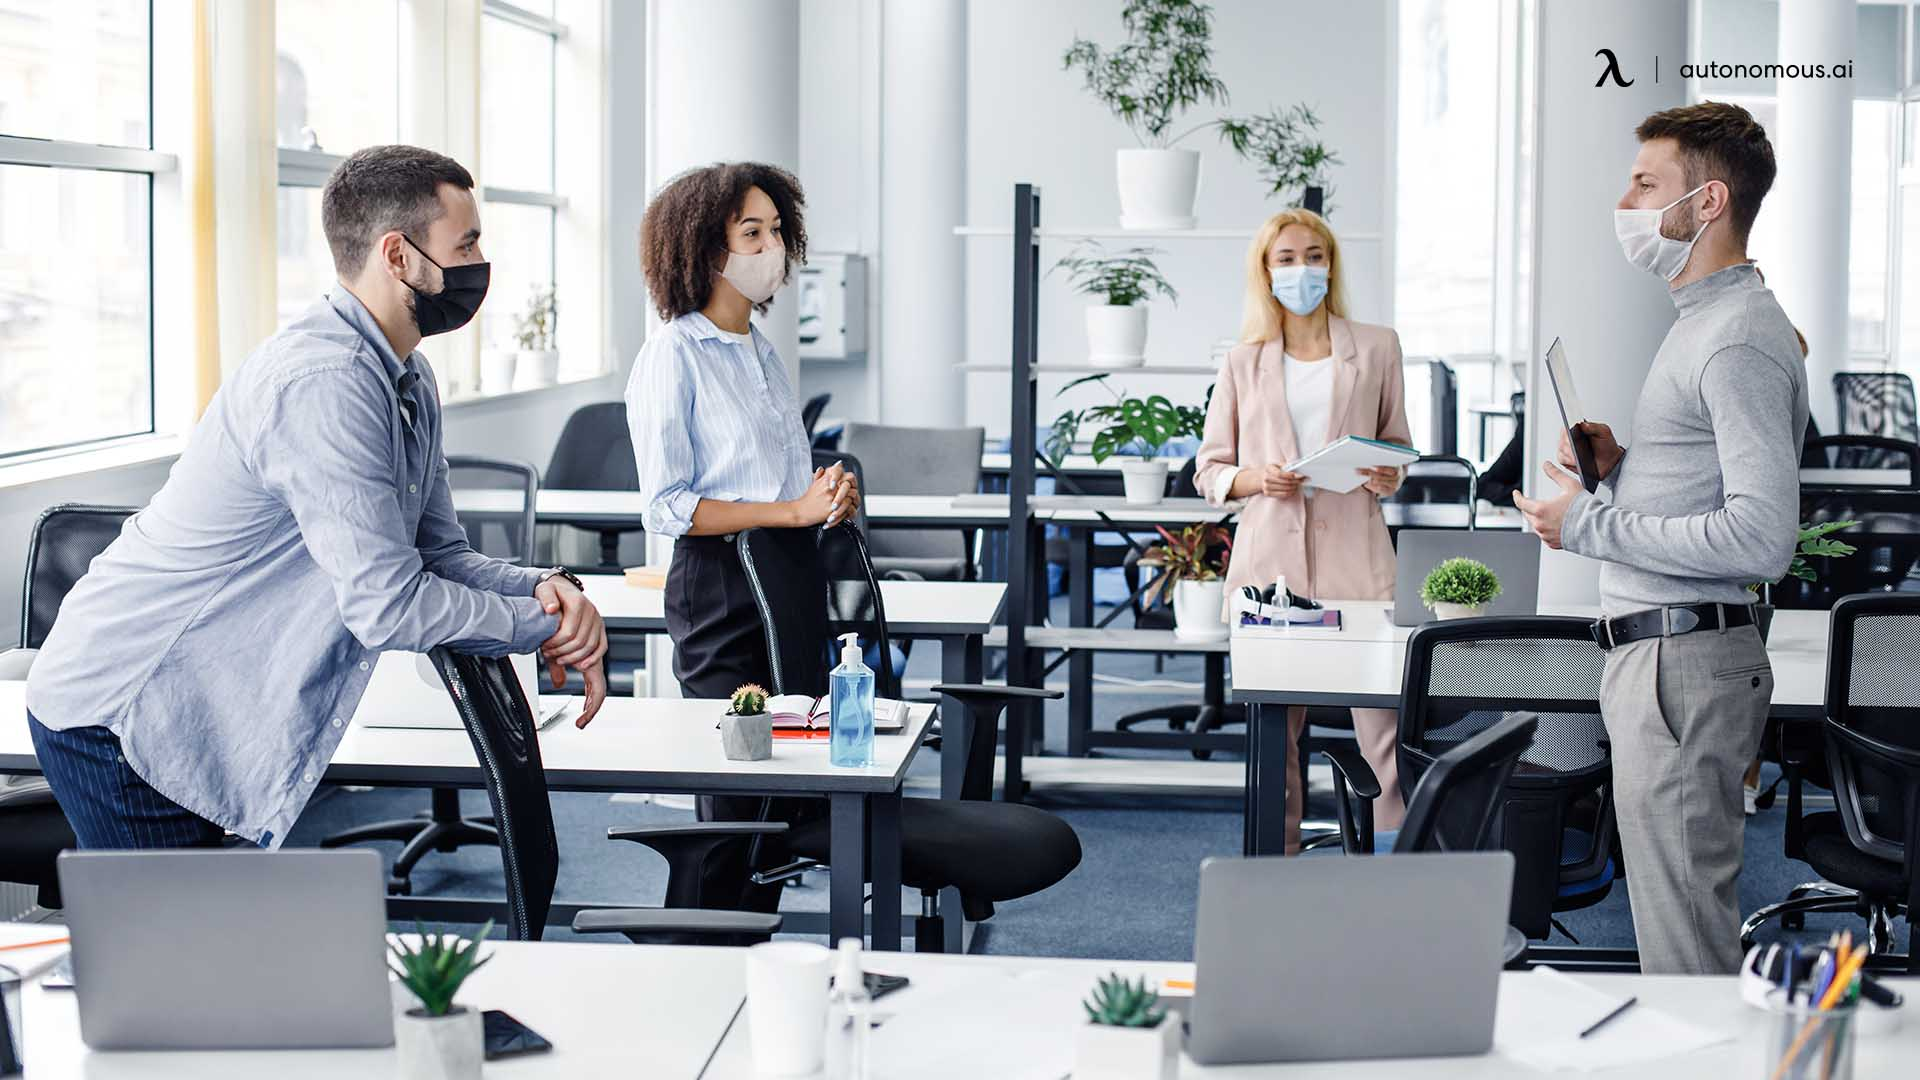 Considerations for Employees as They Return to the Office